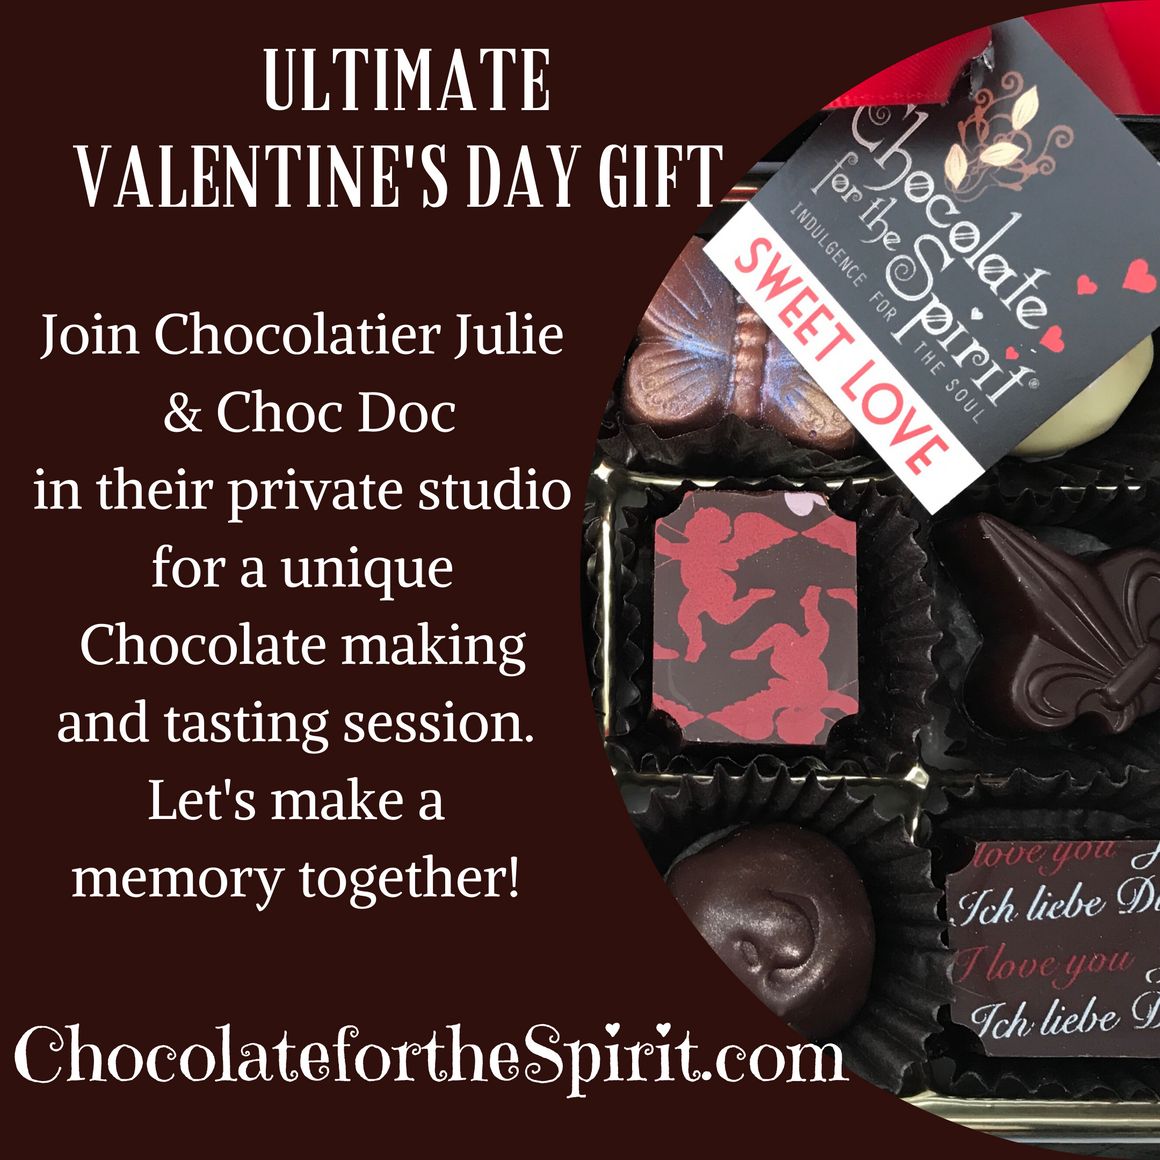 February 13th 7:00pm - 9:30pm- Ultimate Valentine's Day Gift - Chocolate Making and Guided Tasting at our studio in Shelbyville, IN